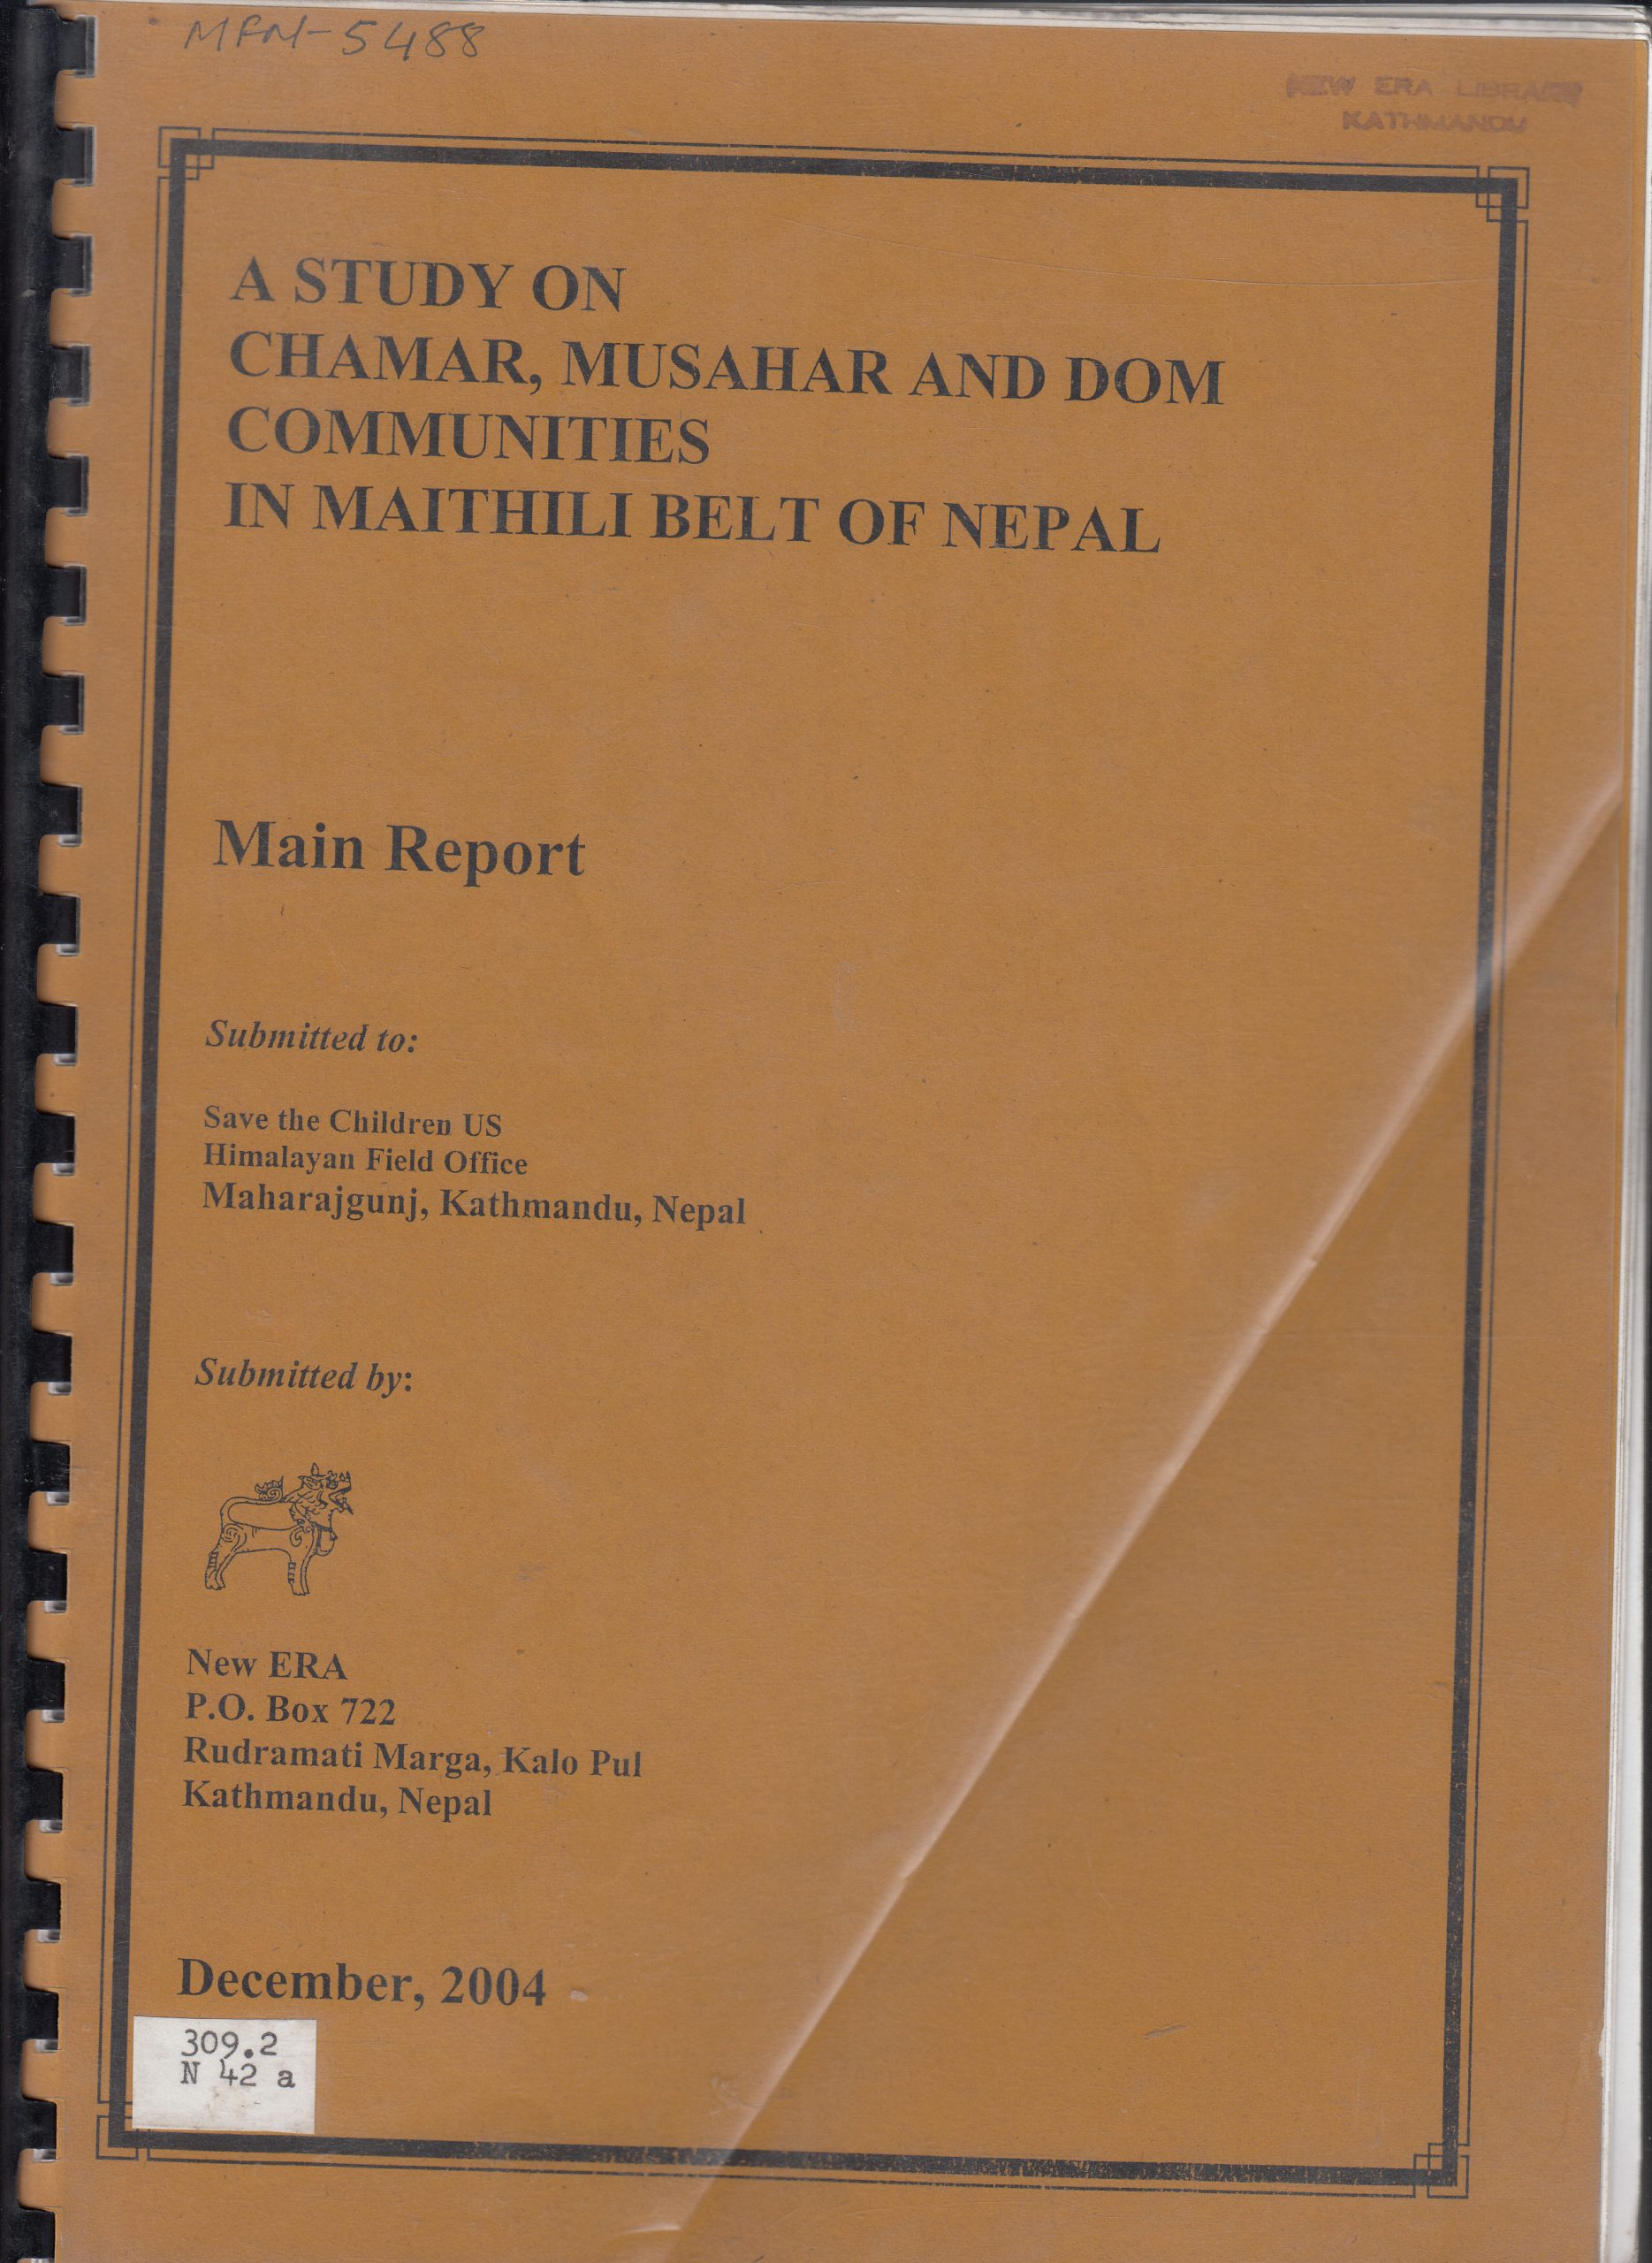 A Study of the Musahar, Chamar and Dom Communities in the Maithili Belt of Nepal